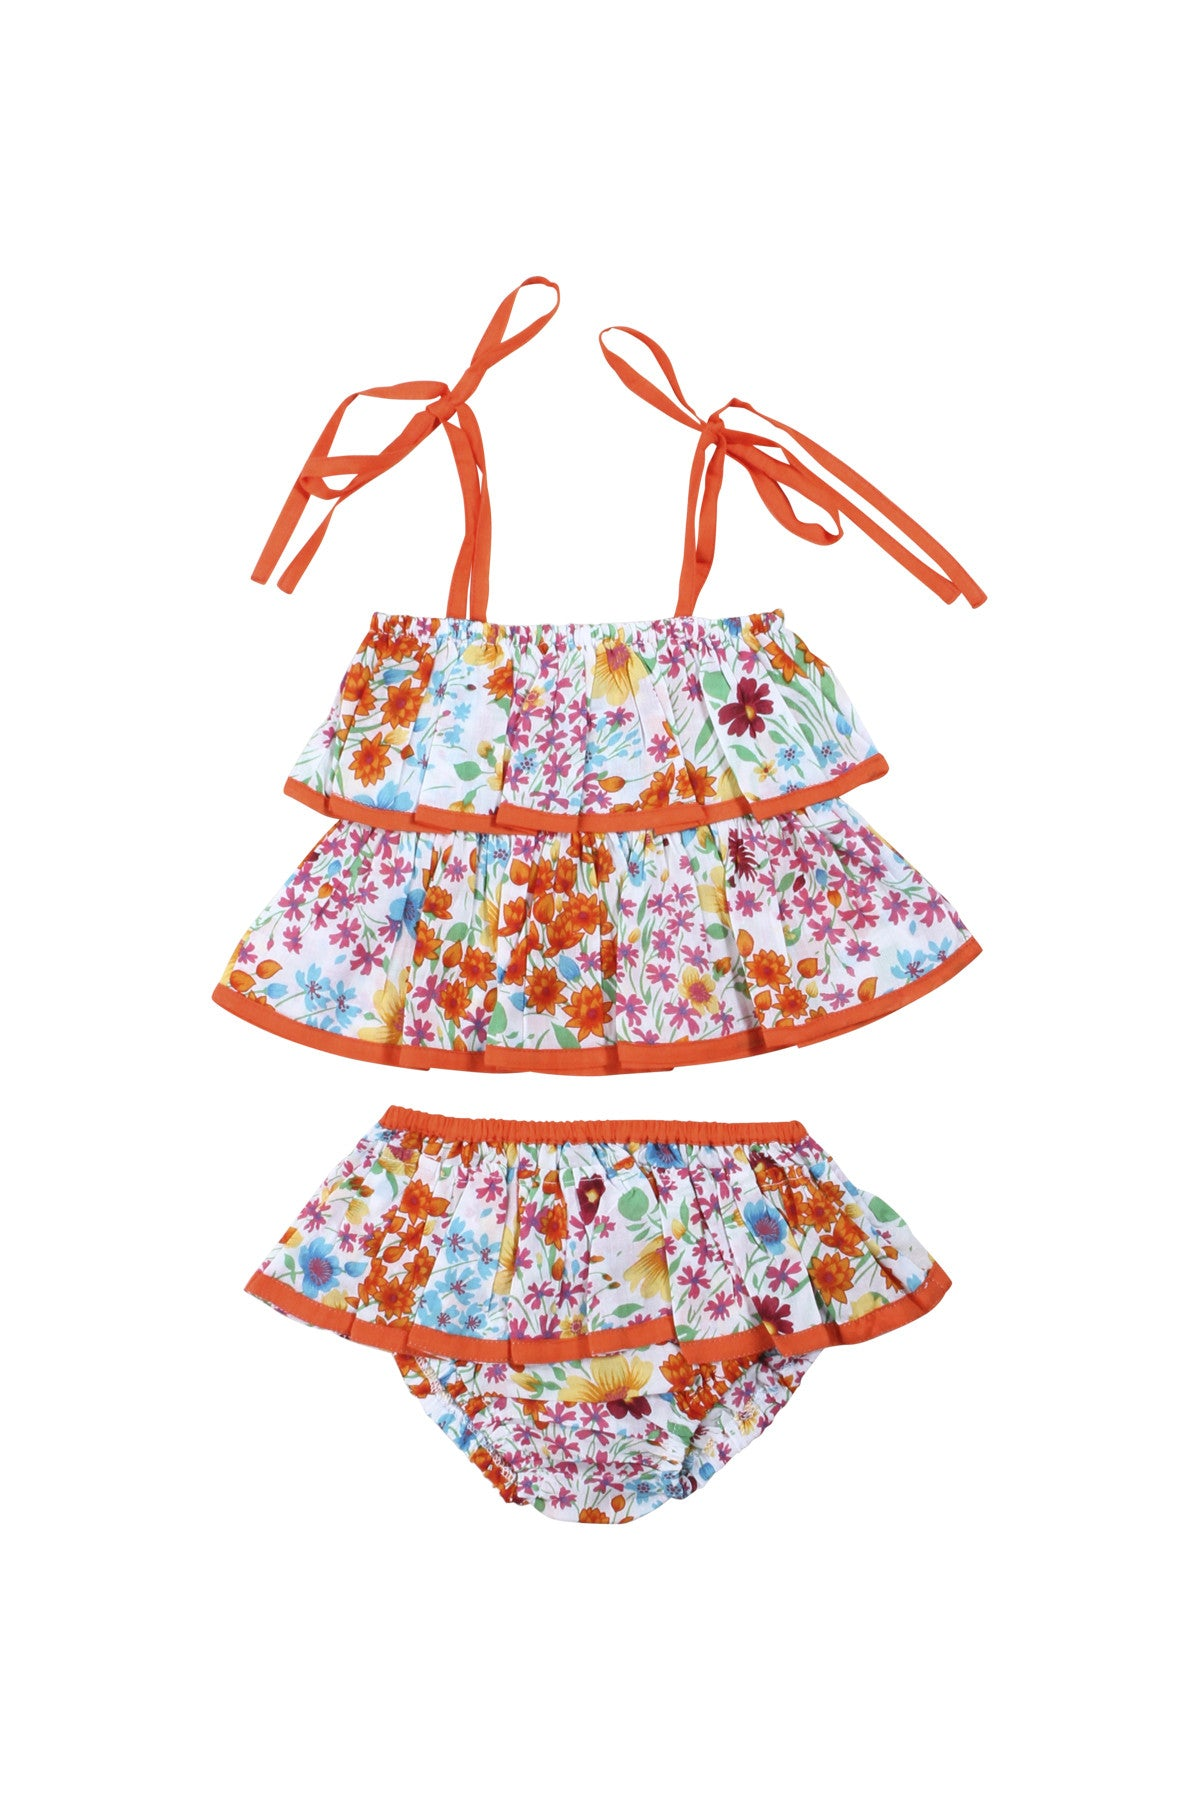 kitty bikini paris gypsy cream, baby